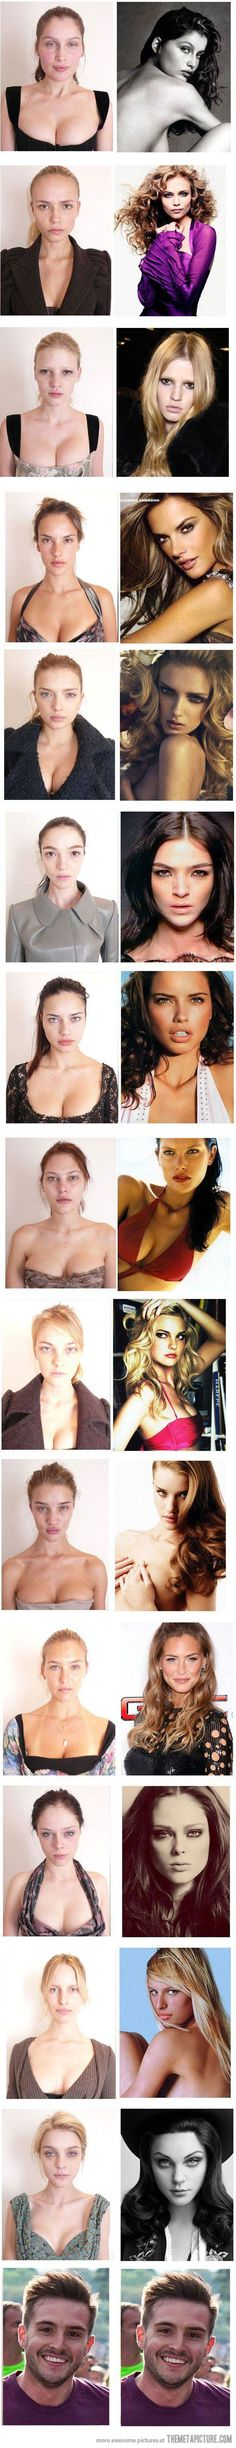 Funny famous supermodels no make up